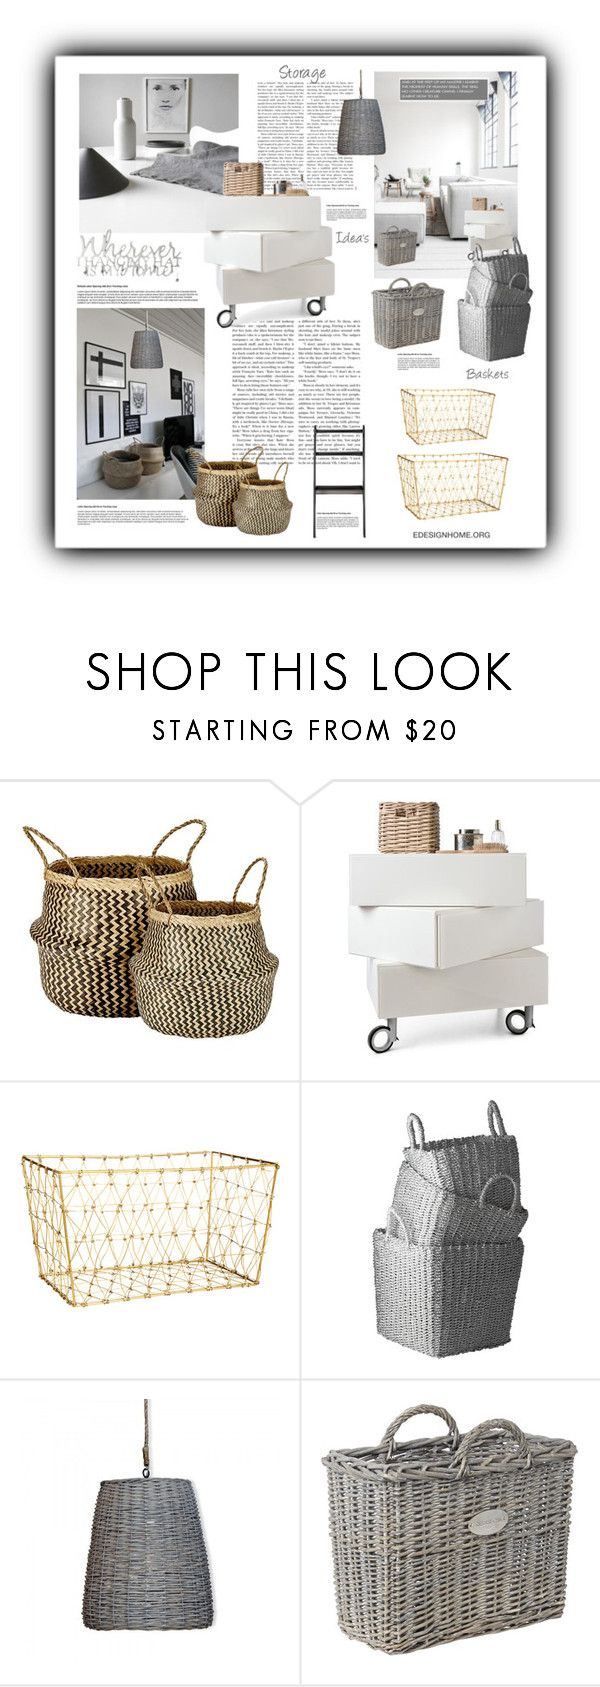 """""""Storage Idea's"""" by efashiondiva7 ❤ liked on Polyvore featuring interior, interiors, interior design, home, home decor, interior decorating, Murmur, H&M, Lazy Susan and Shabby Chic"""